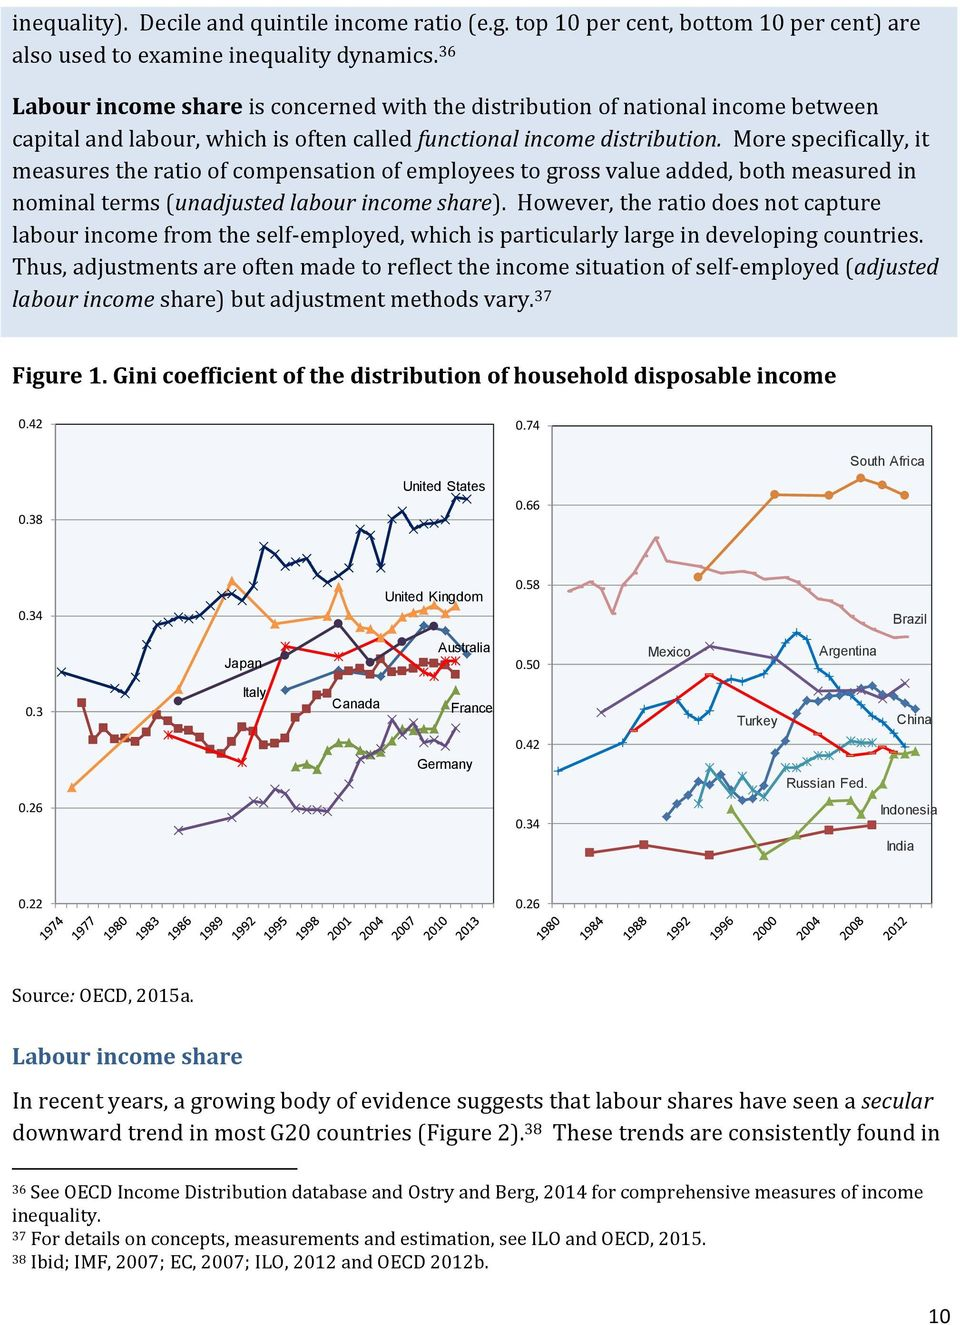 Income inequality causes and trends